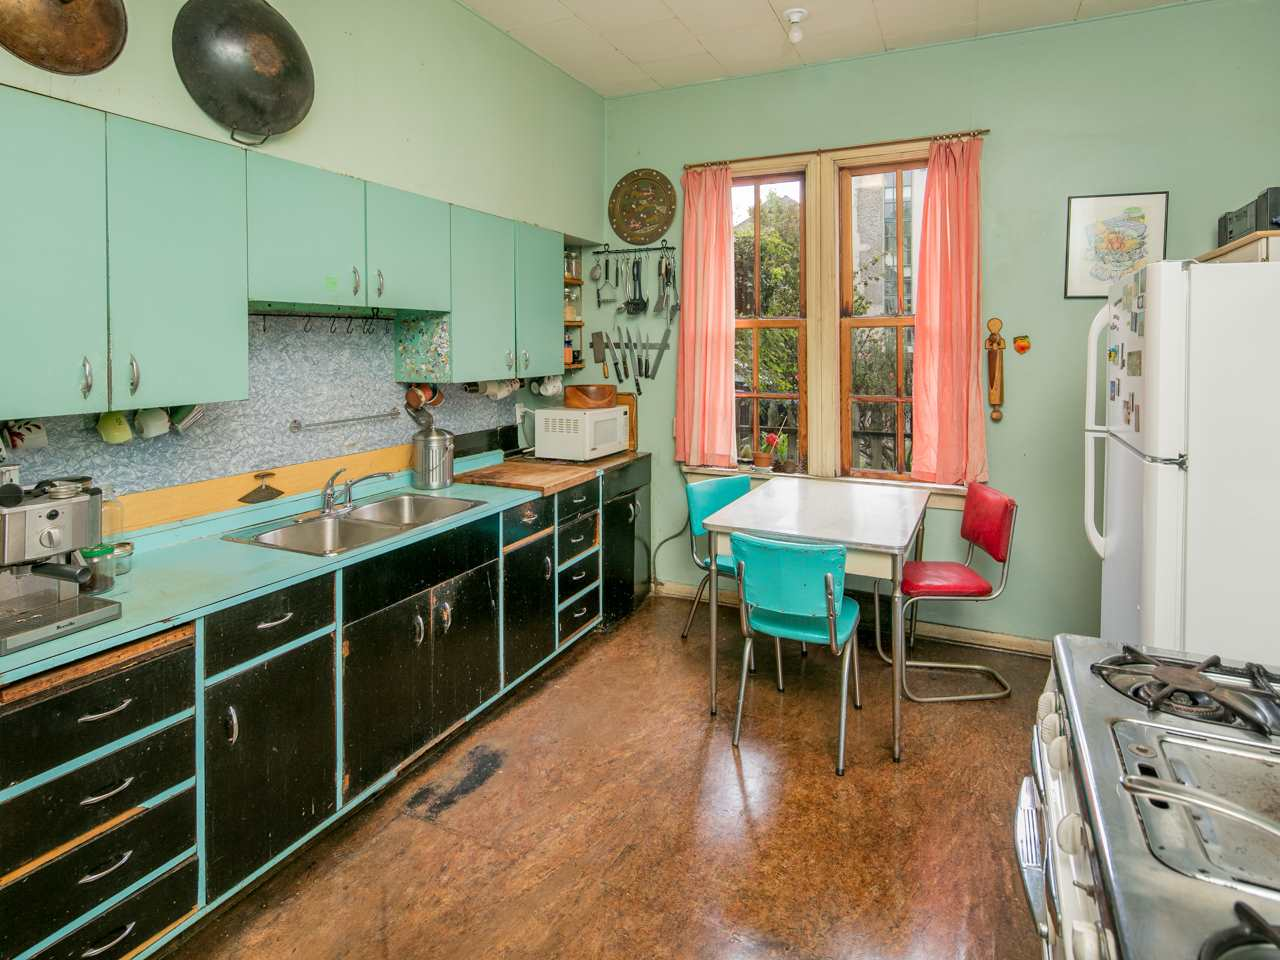 Photo 8: 450 HEATLEY Avenue in Vancouver: Mount Pleasant VE House for sale (Vancouver East)  : MLS(r) # R2166102